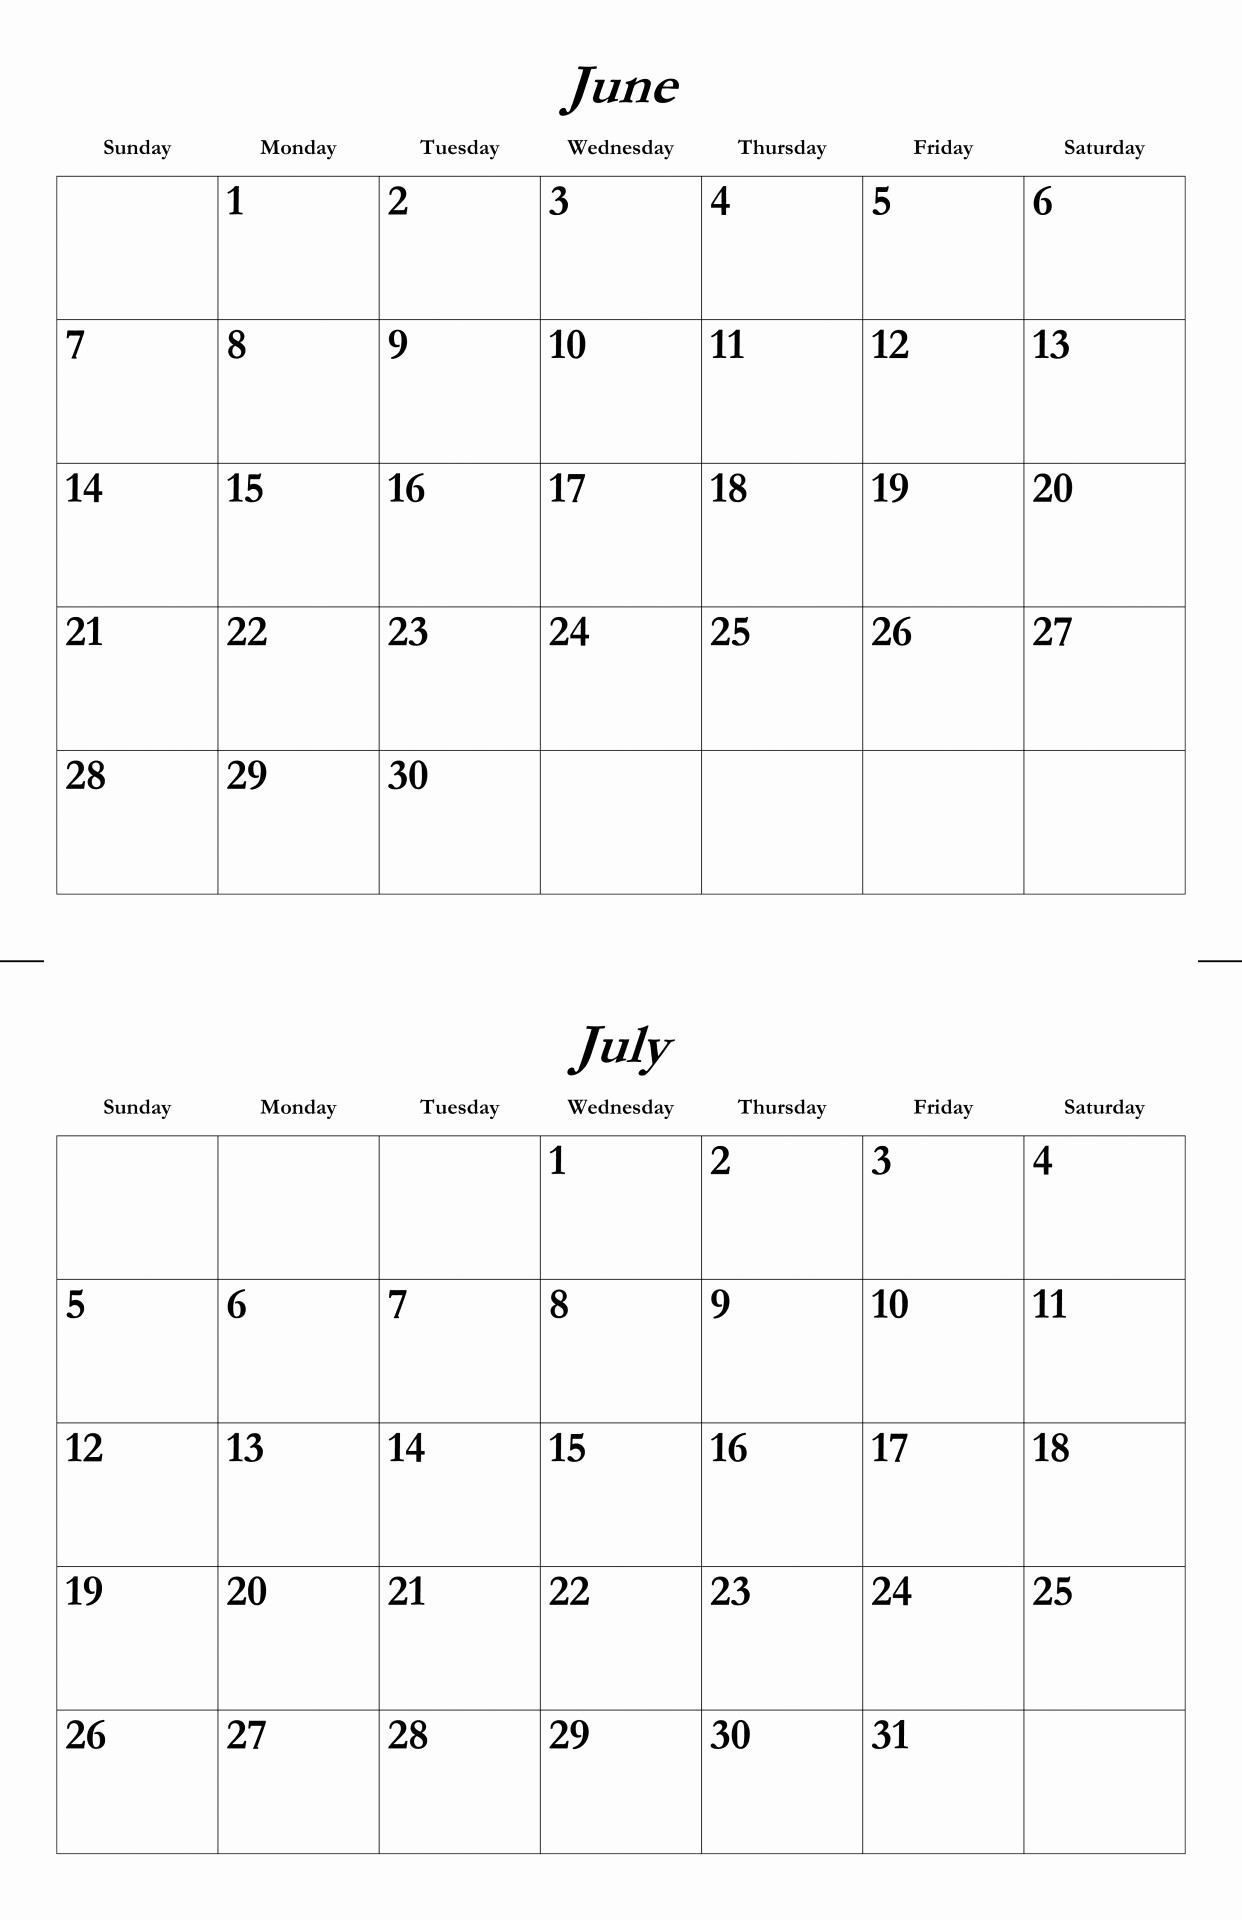 Month by Month Calendar Template Beautiful 2015 Calendar Printable by Month – 2017 Printable Calendar